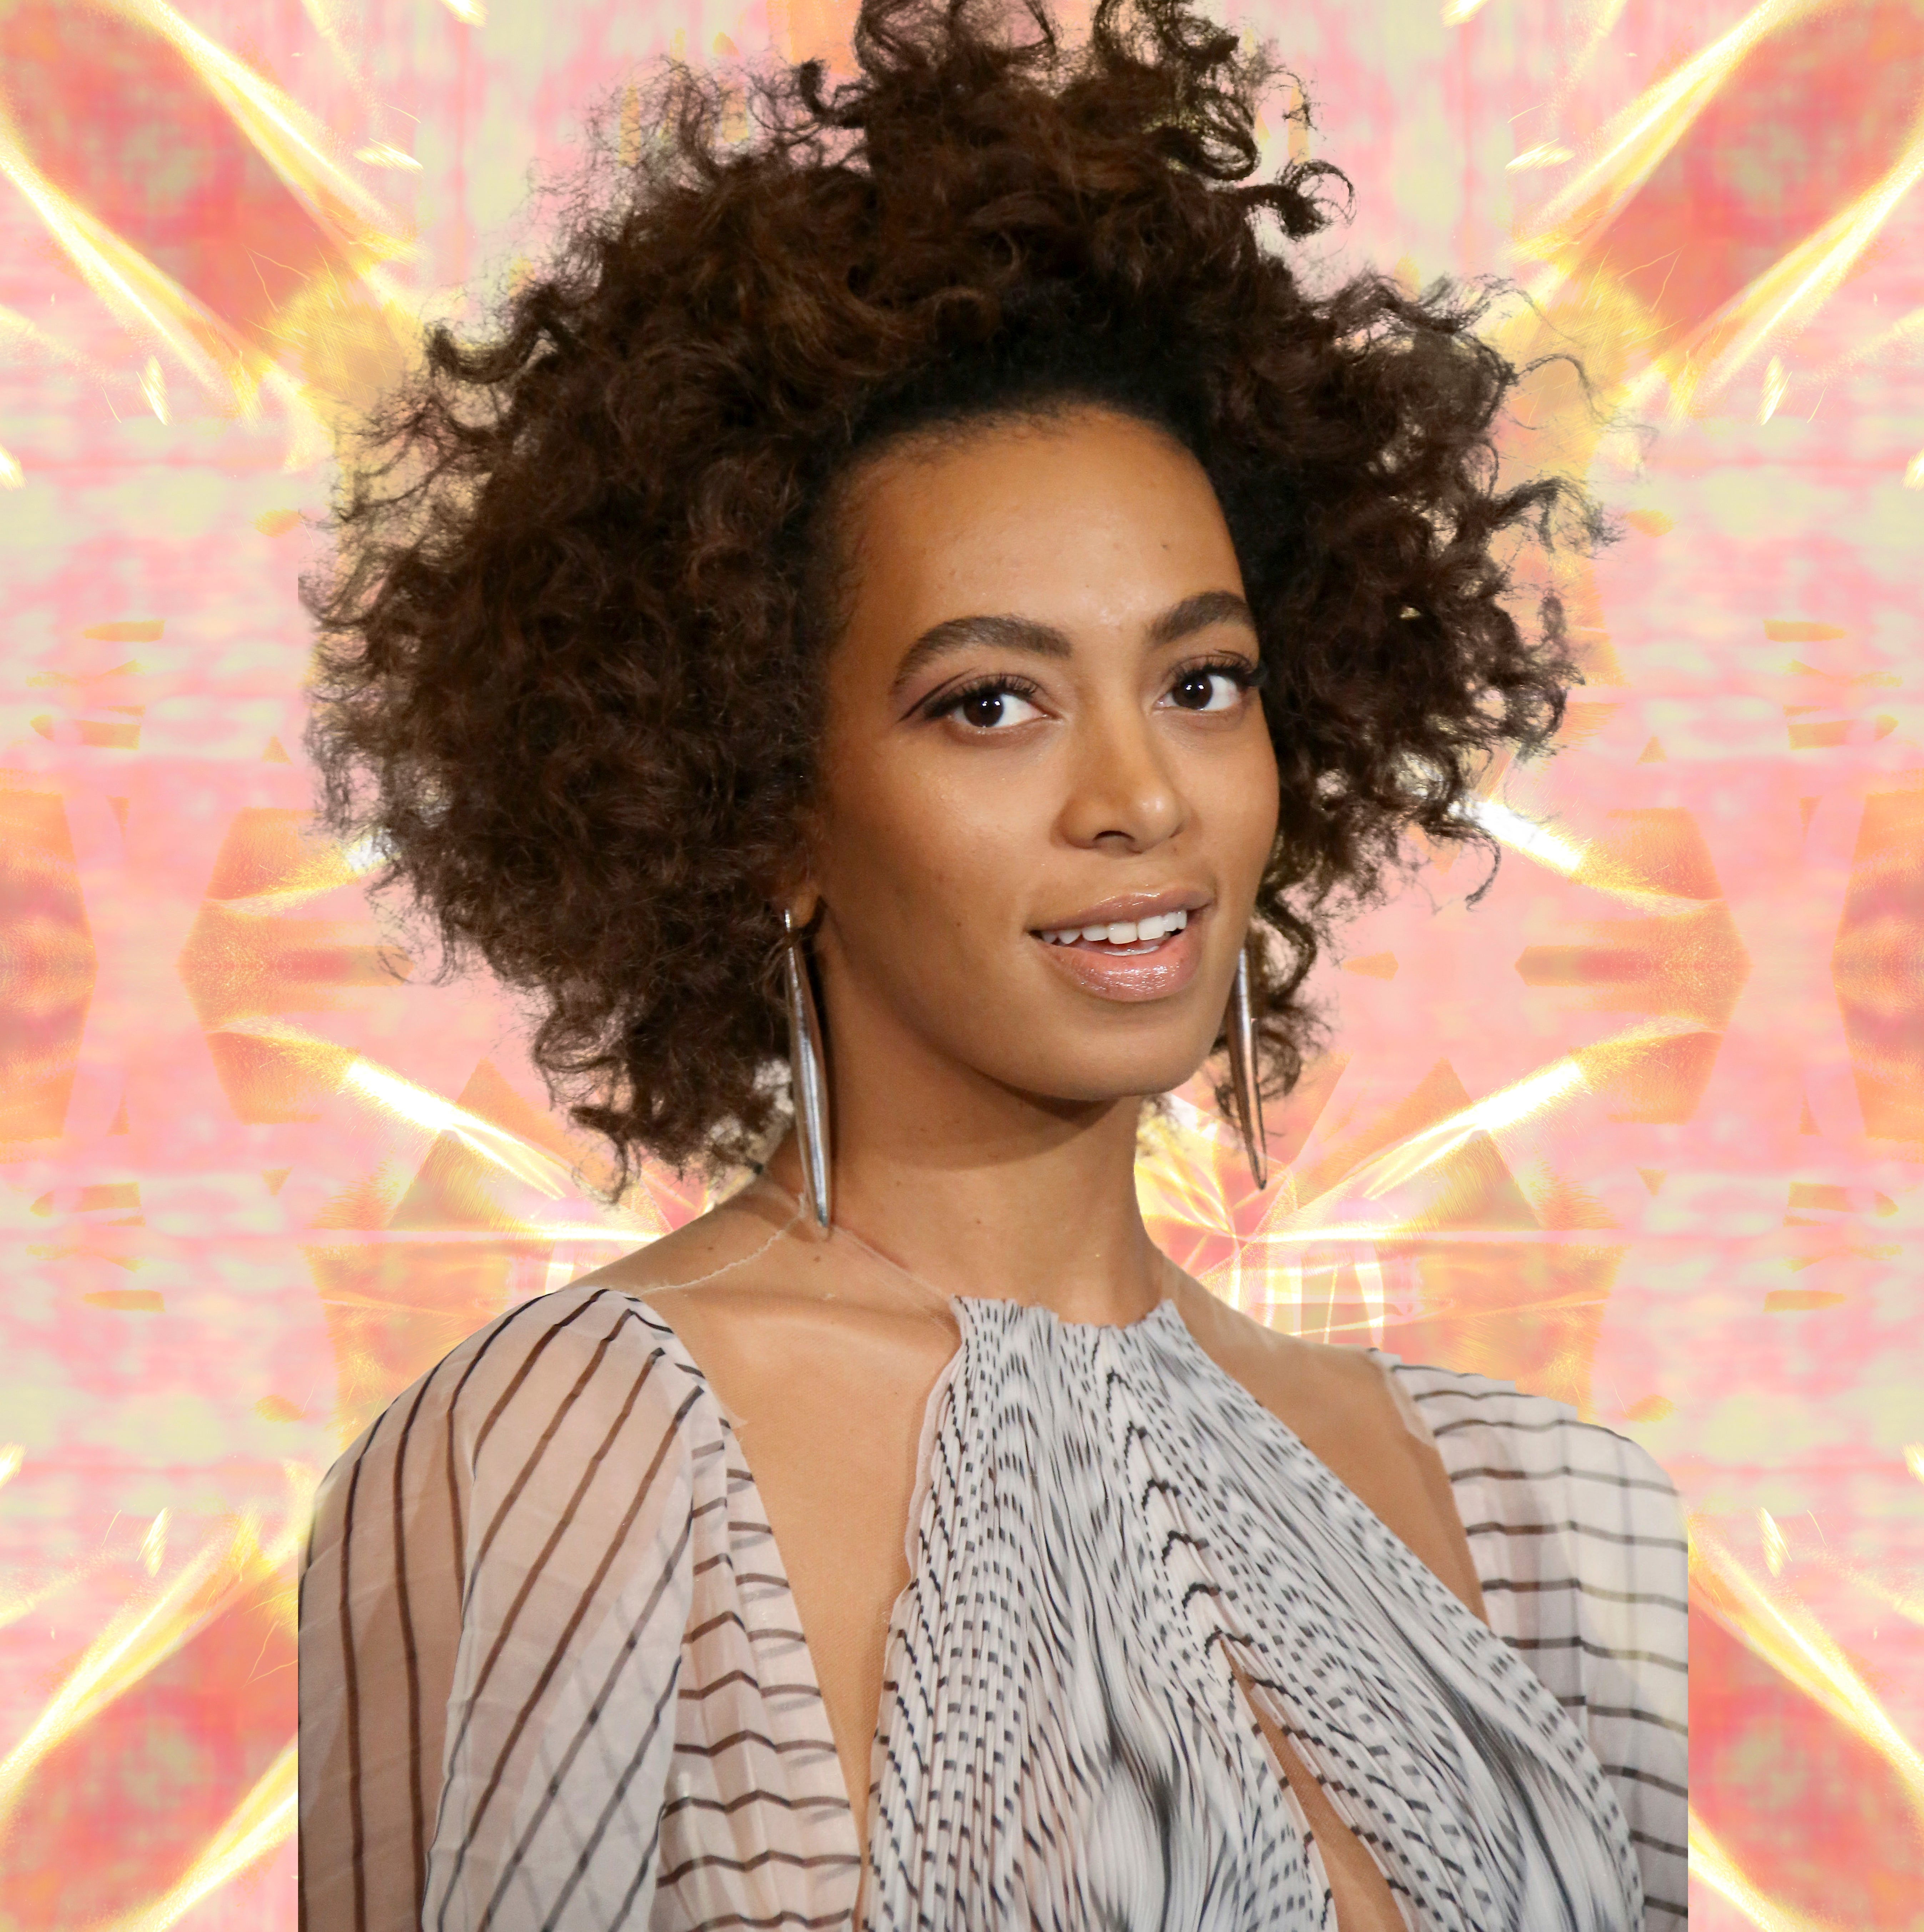 Solange's 'A Seat At the Table' An Honest Year In Review